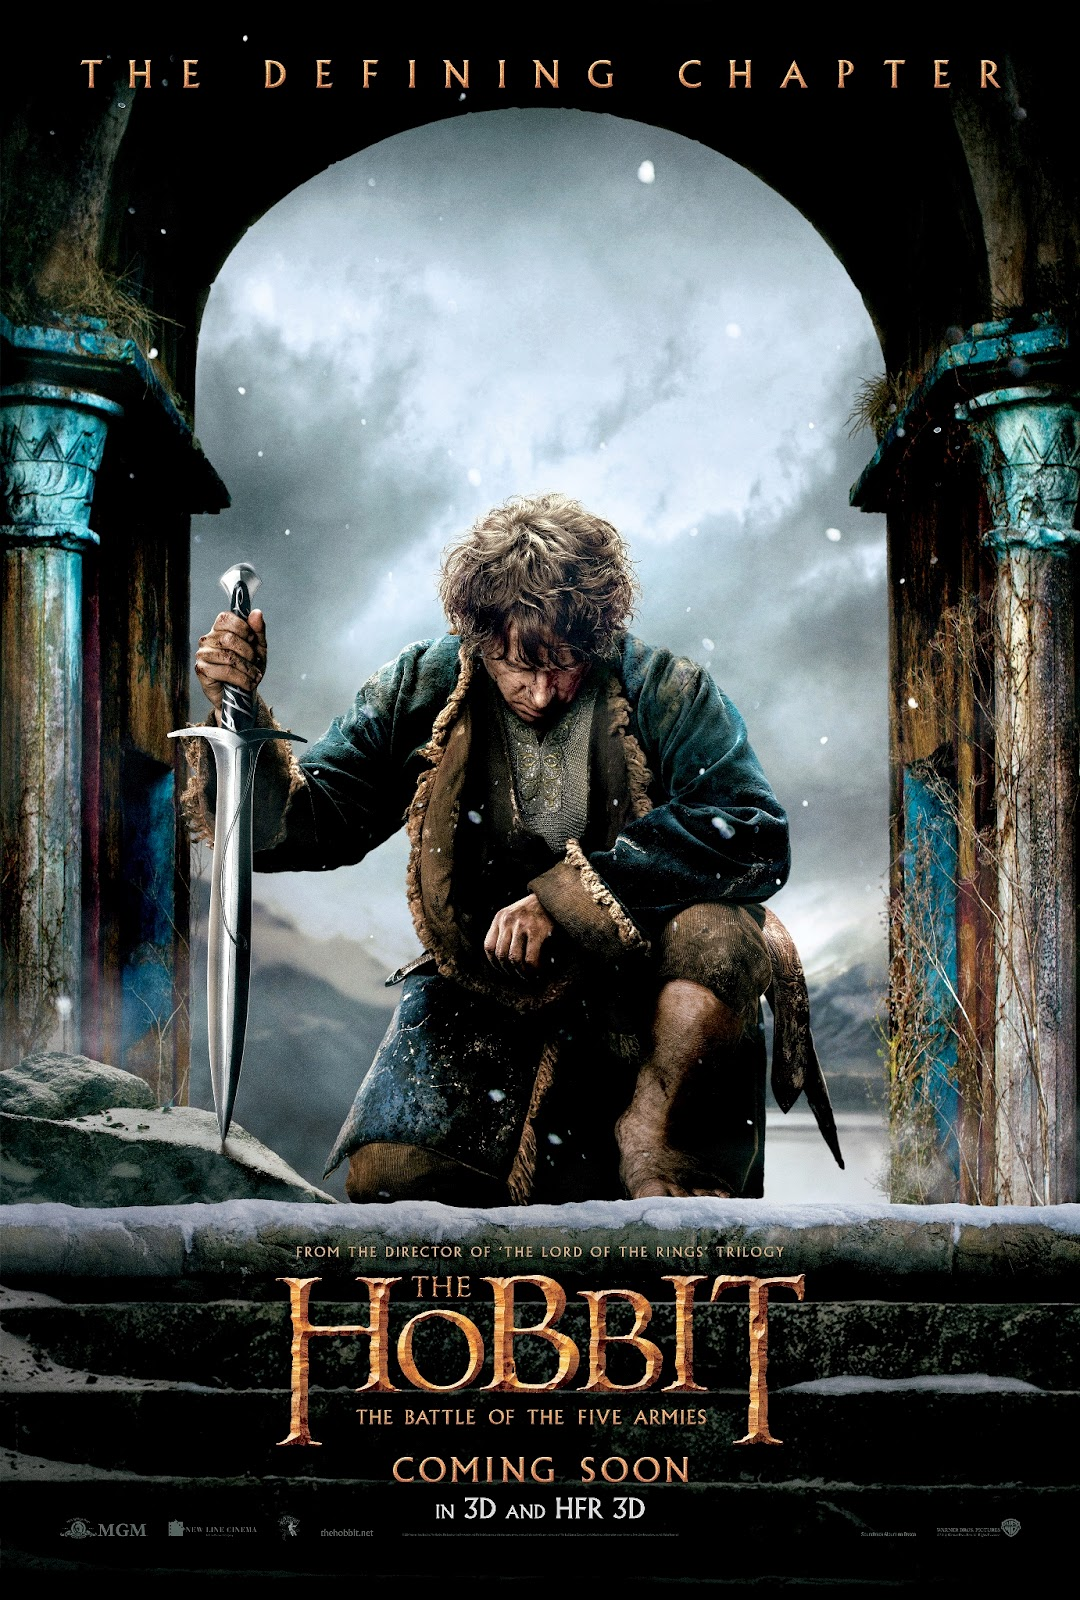 Poster và baner cực đẹp của phim The Hobbit: The Battle of the Five Armies 004